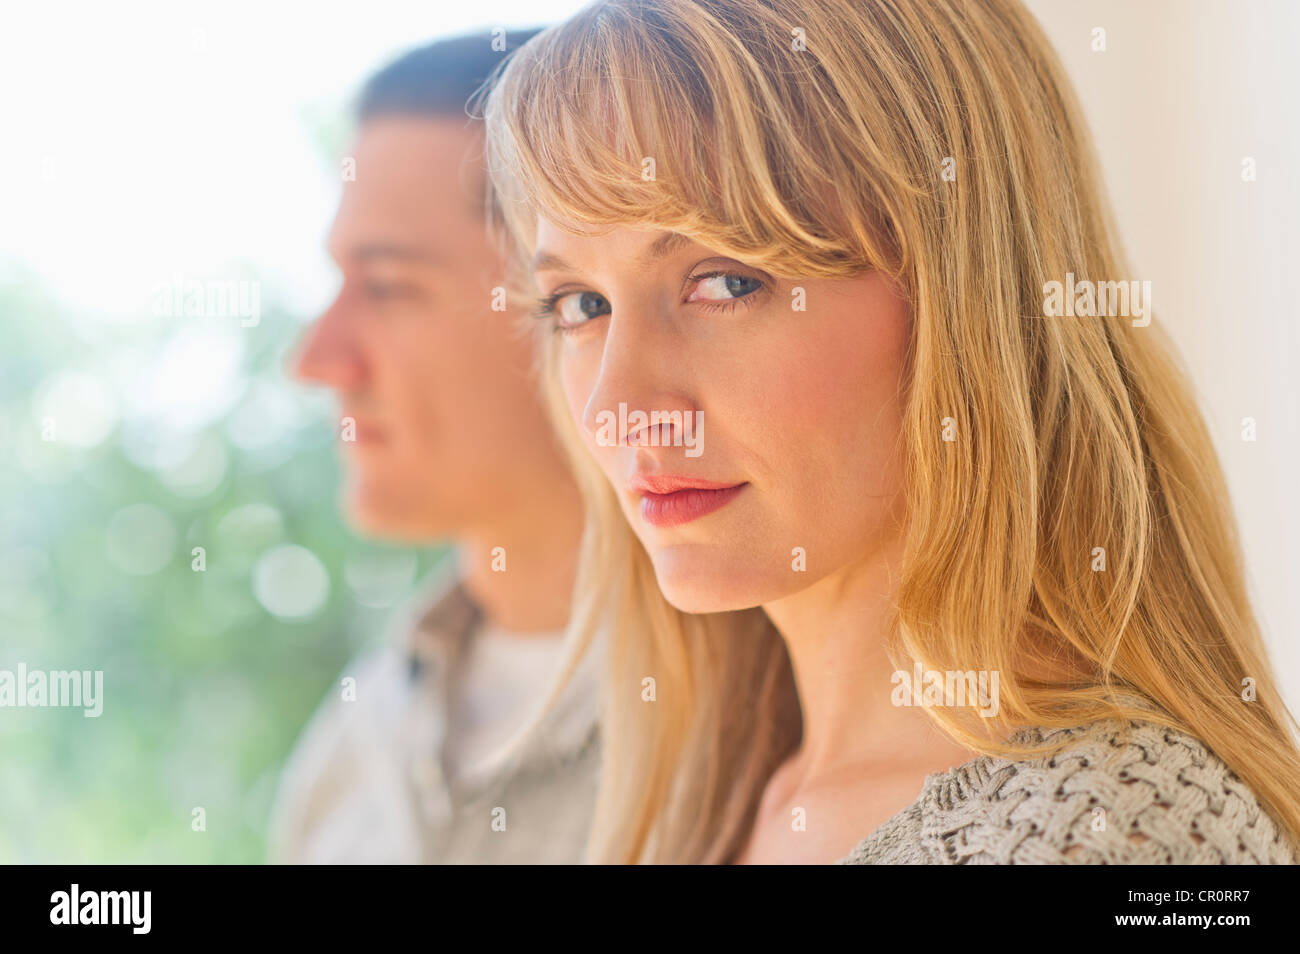 USA, New Jersey, Jersey City, Close up woman's face with man in background - Stock Image